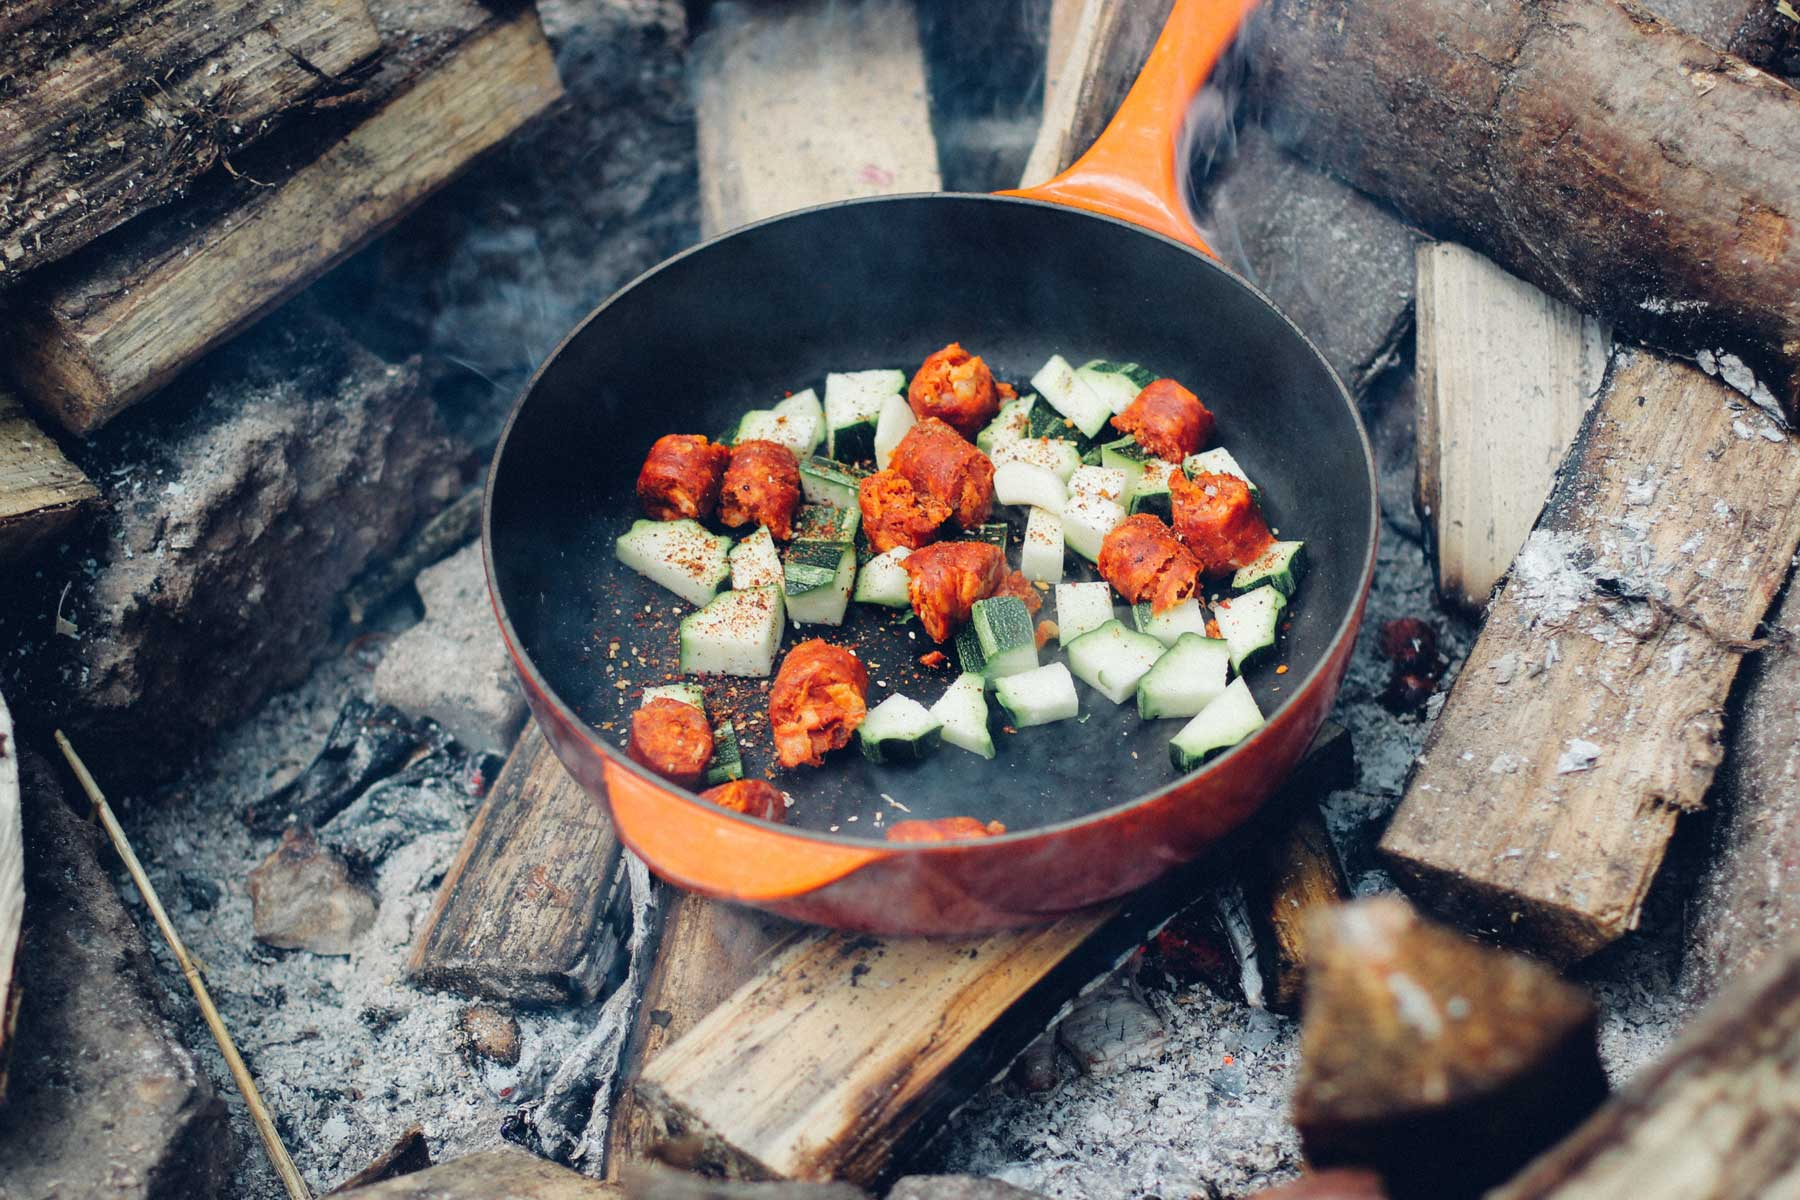 Food tastes better when cooked outdoors